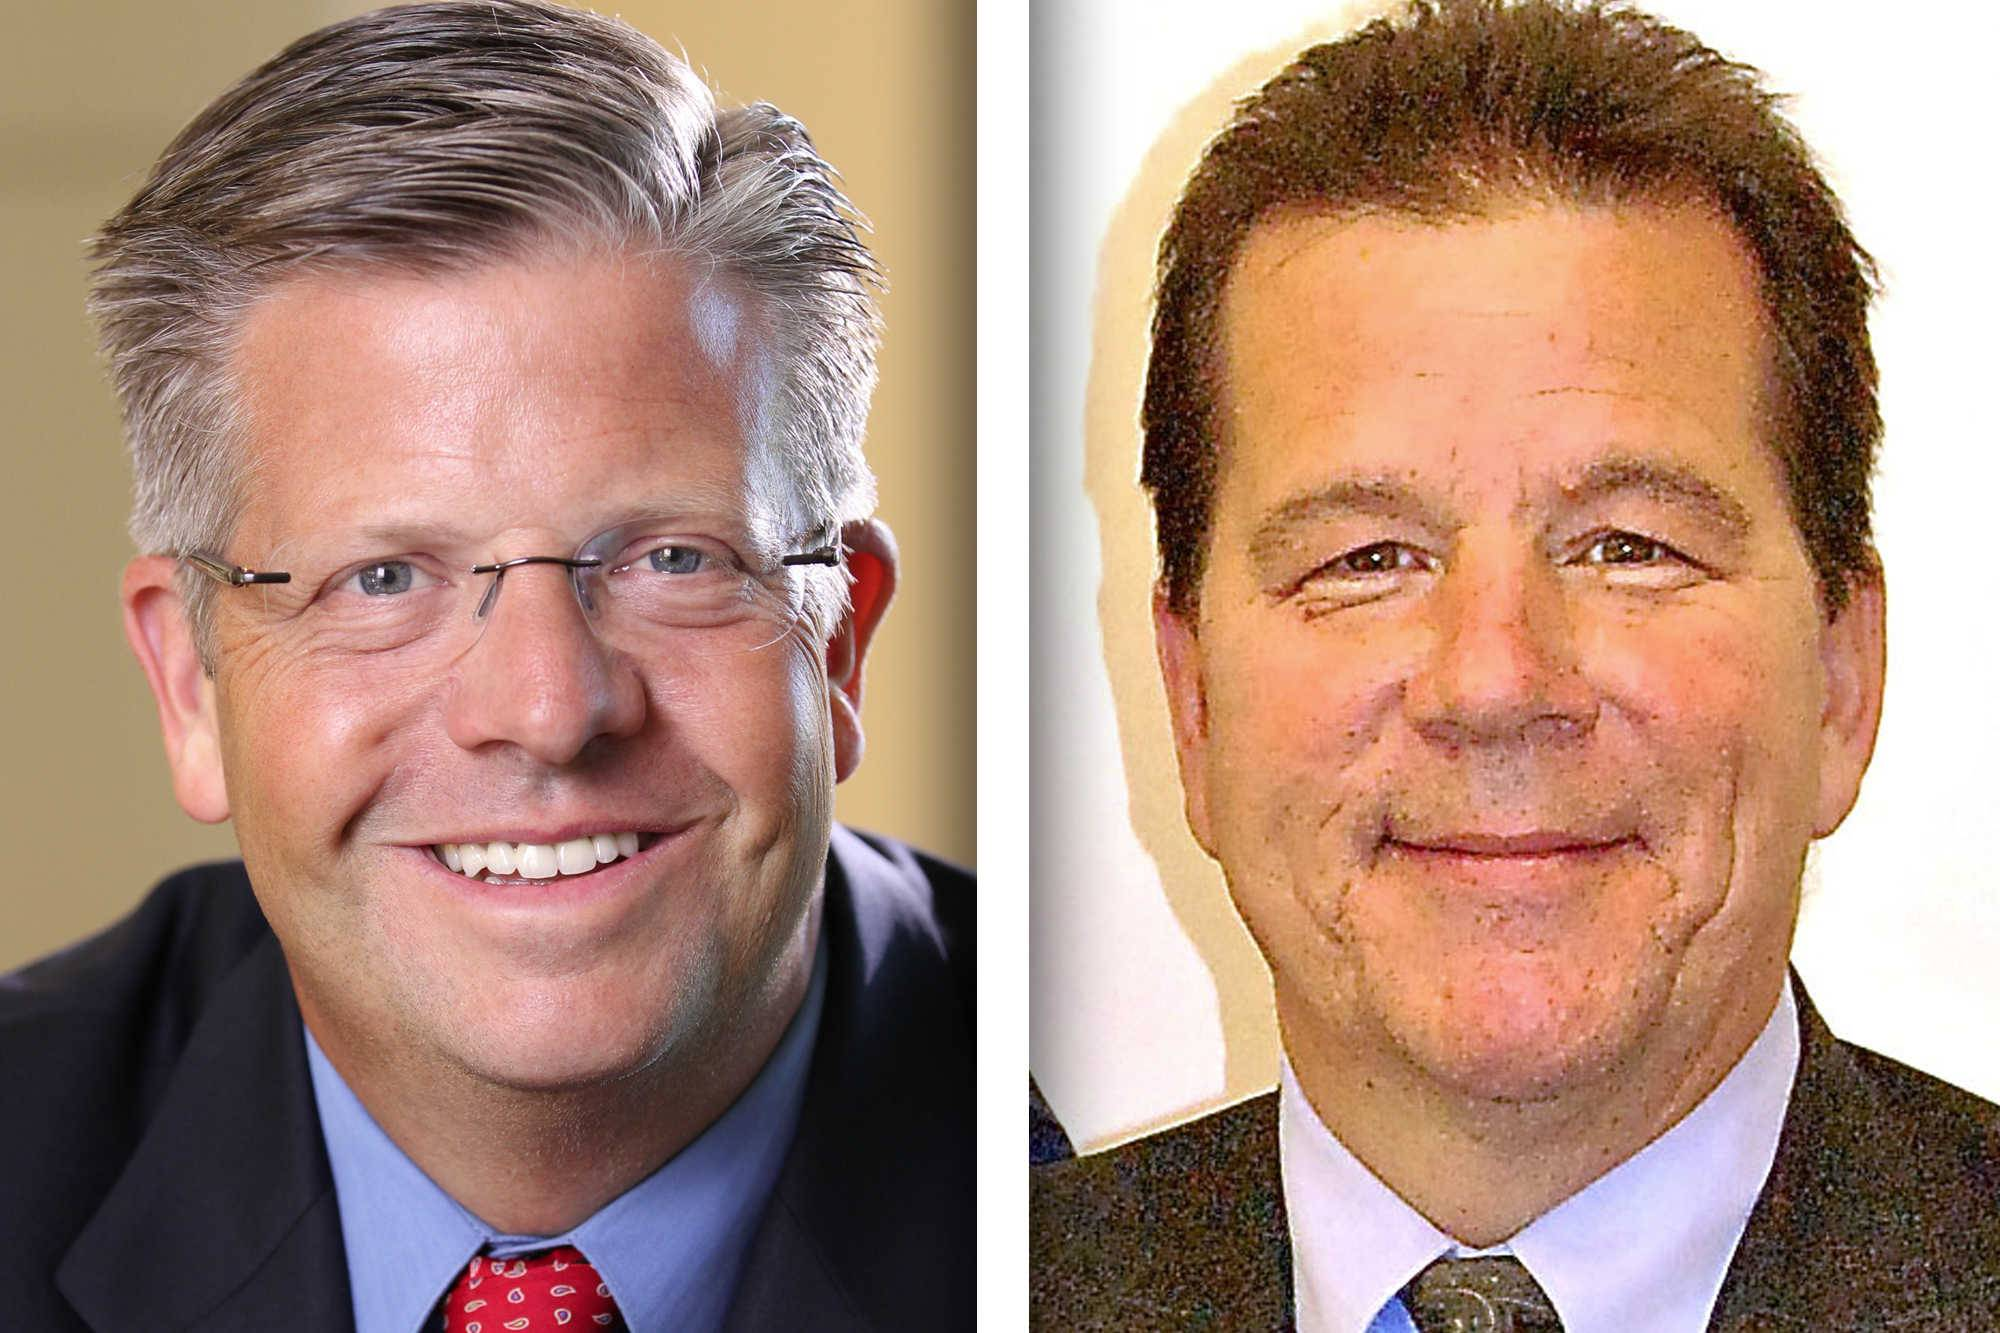 Republican Randy Hultgren, left, and Democrat Jim Walz